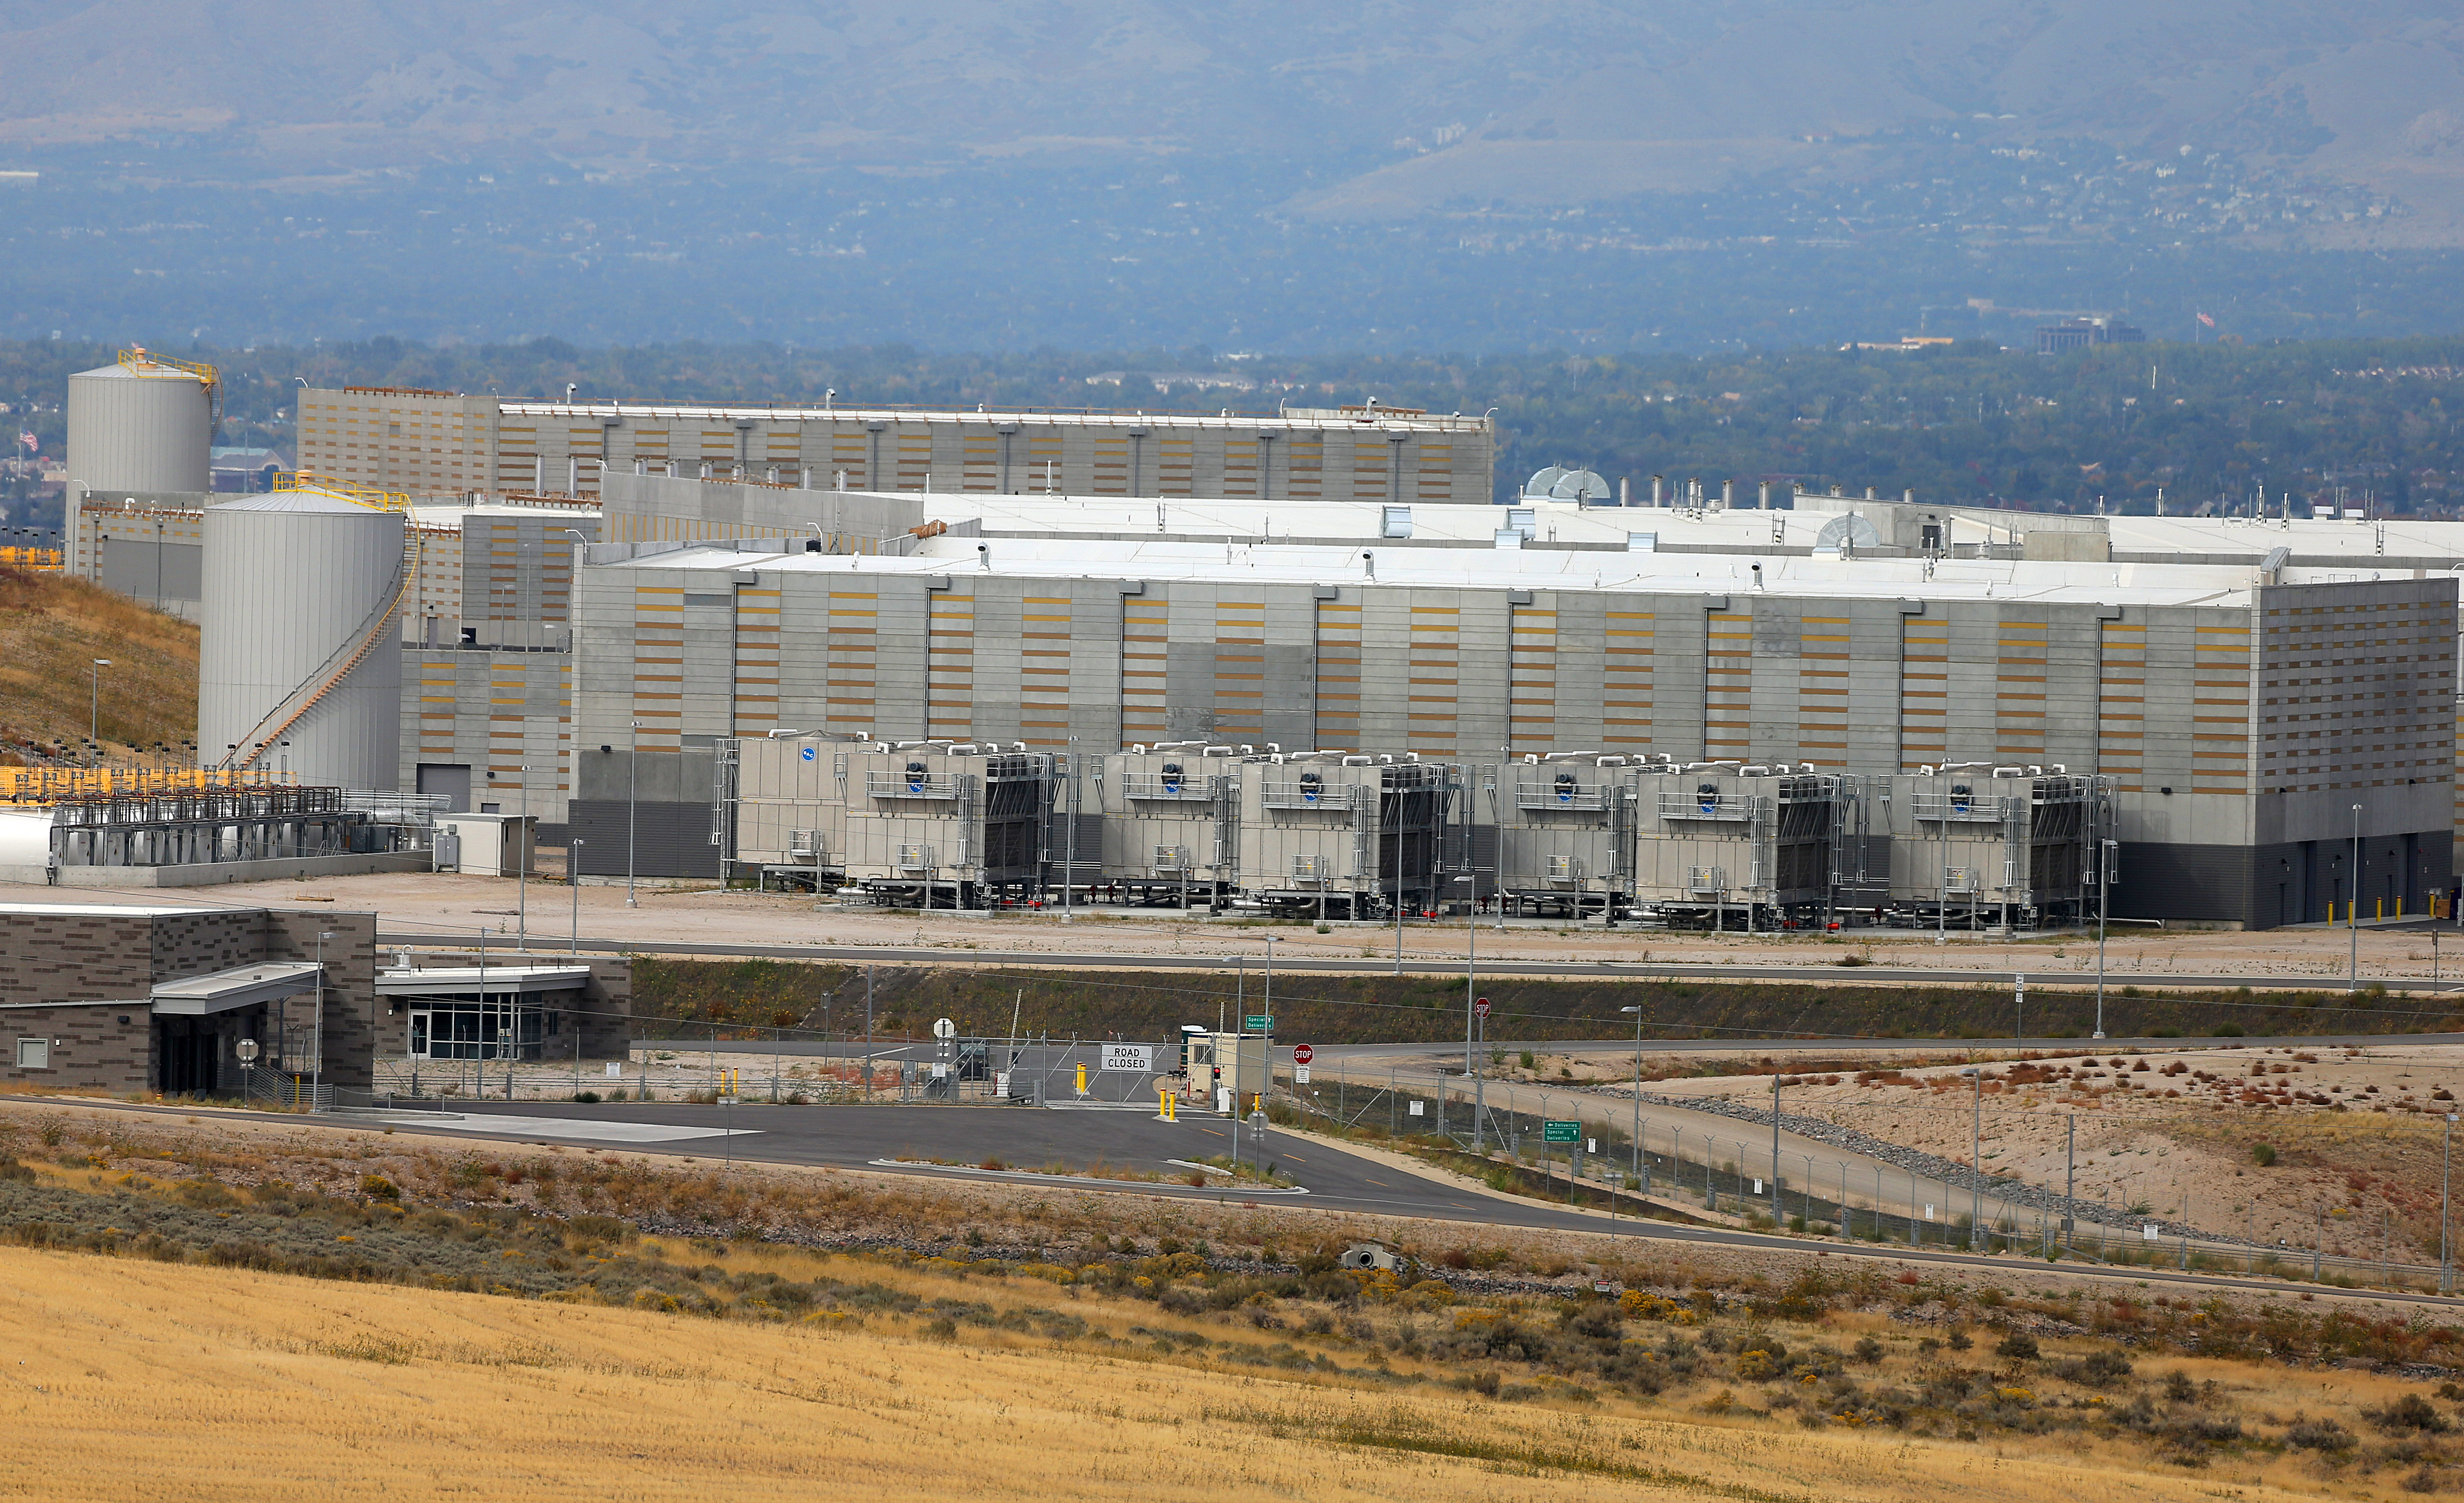 Image of the outside of the new NSA Data Center in Salt Lake Valley